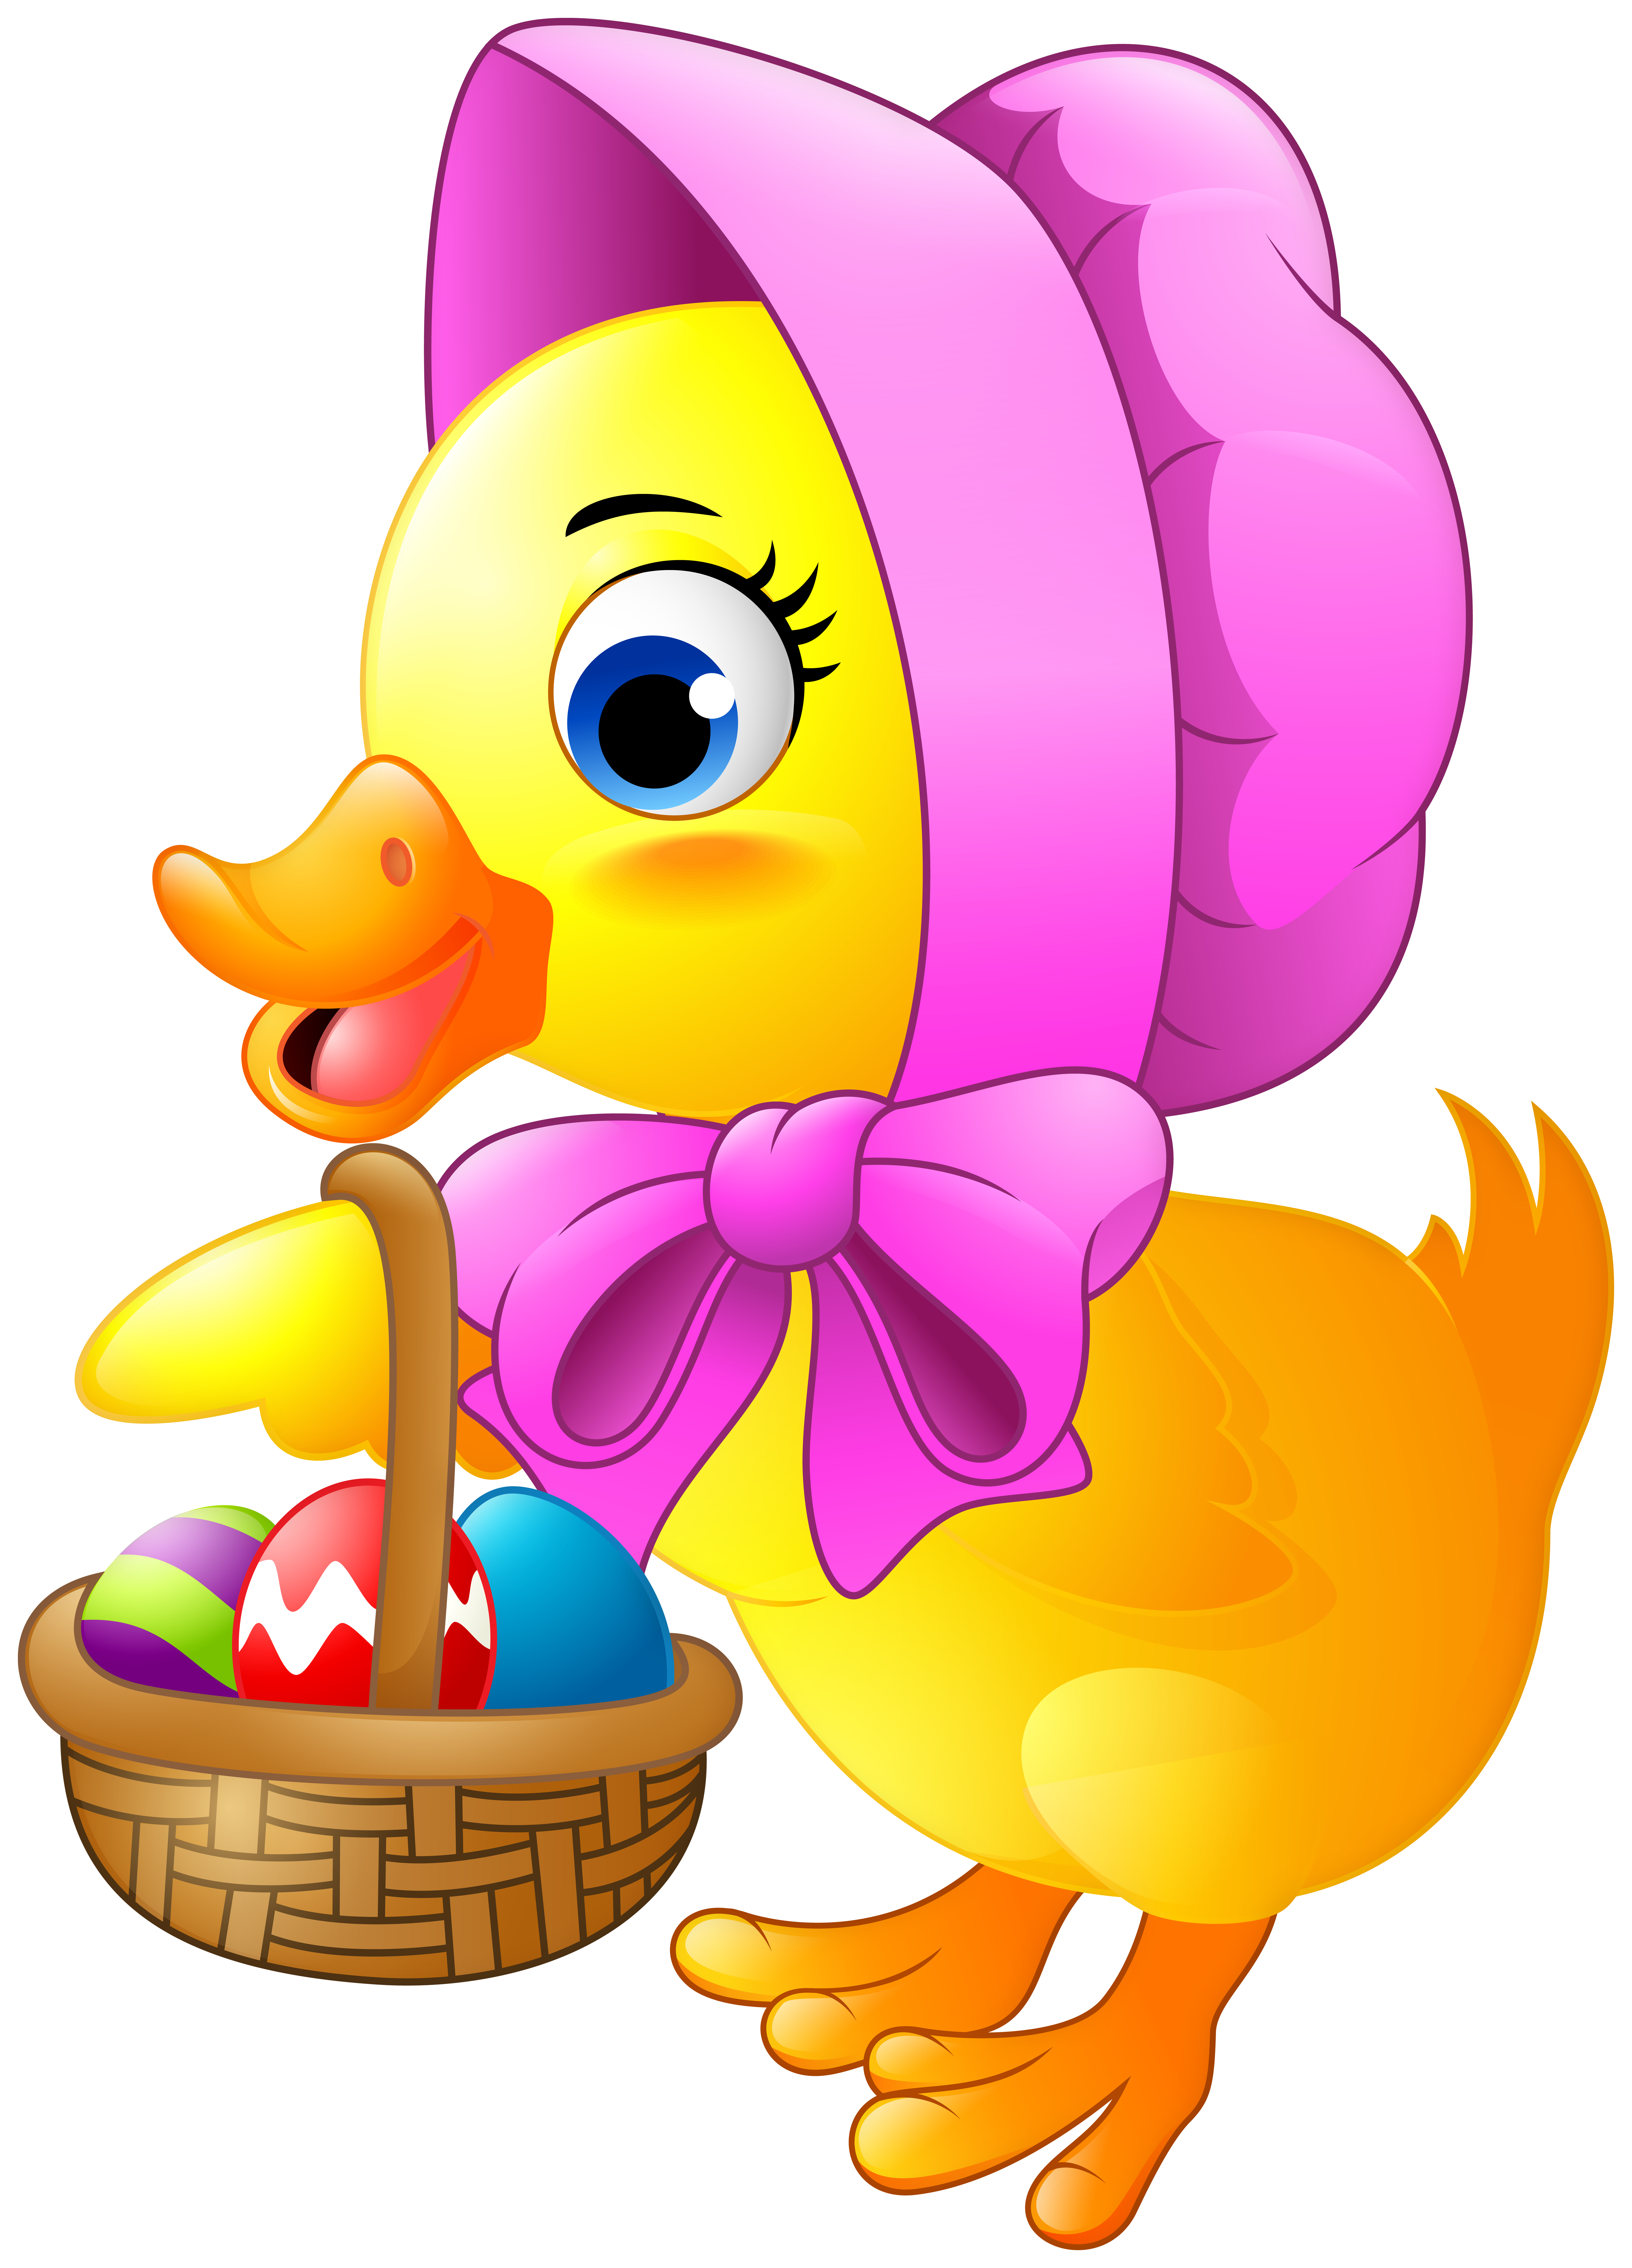 Easter duck clipart vector download Easter Duck Clipart Image | Gallery Yopriceville - High-Quality ... vector download